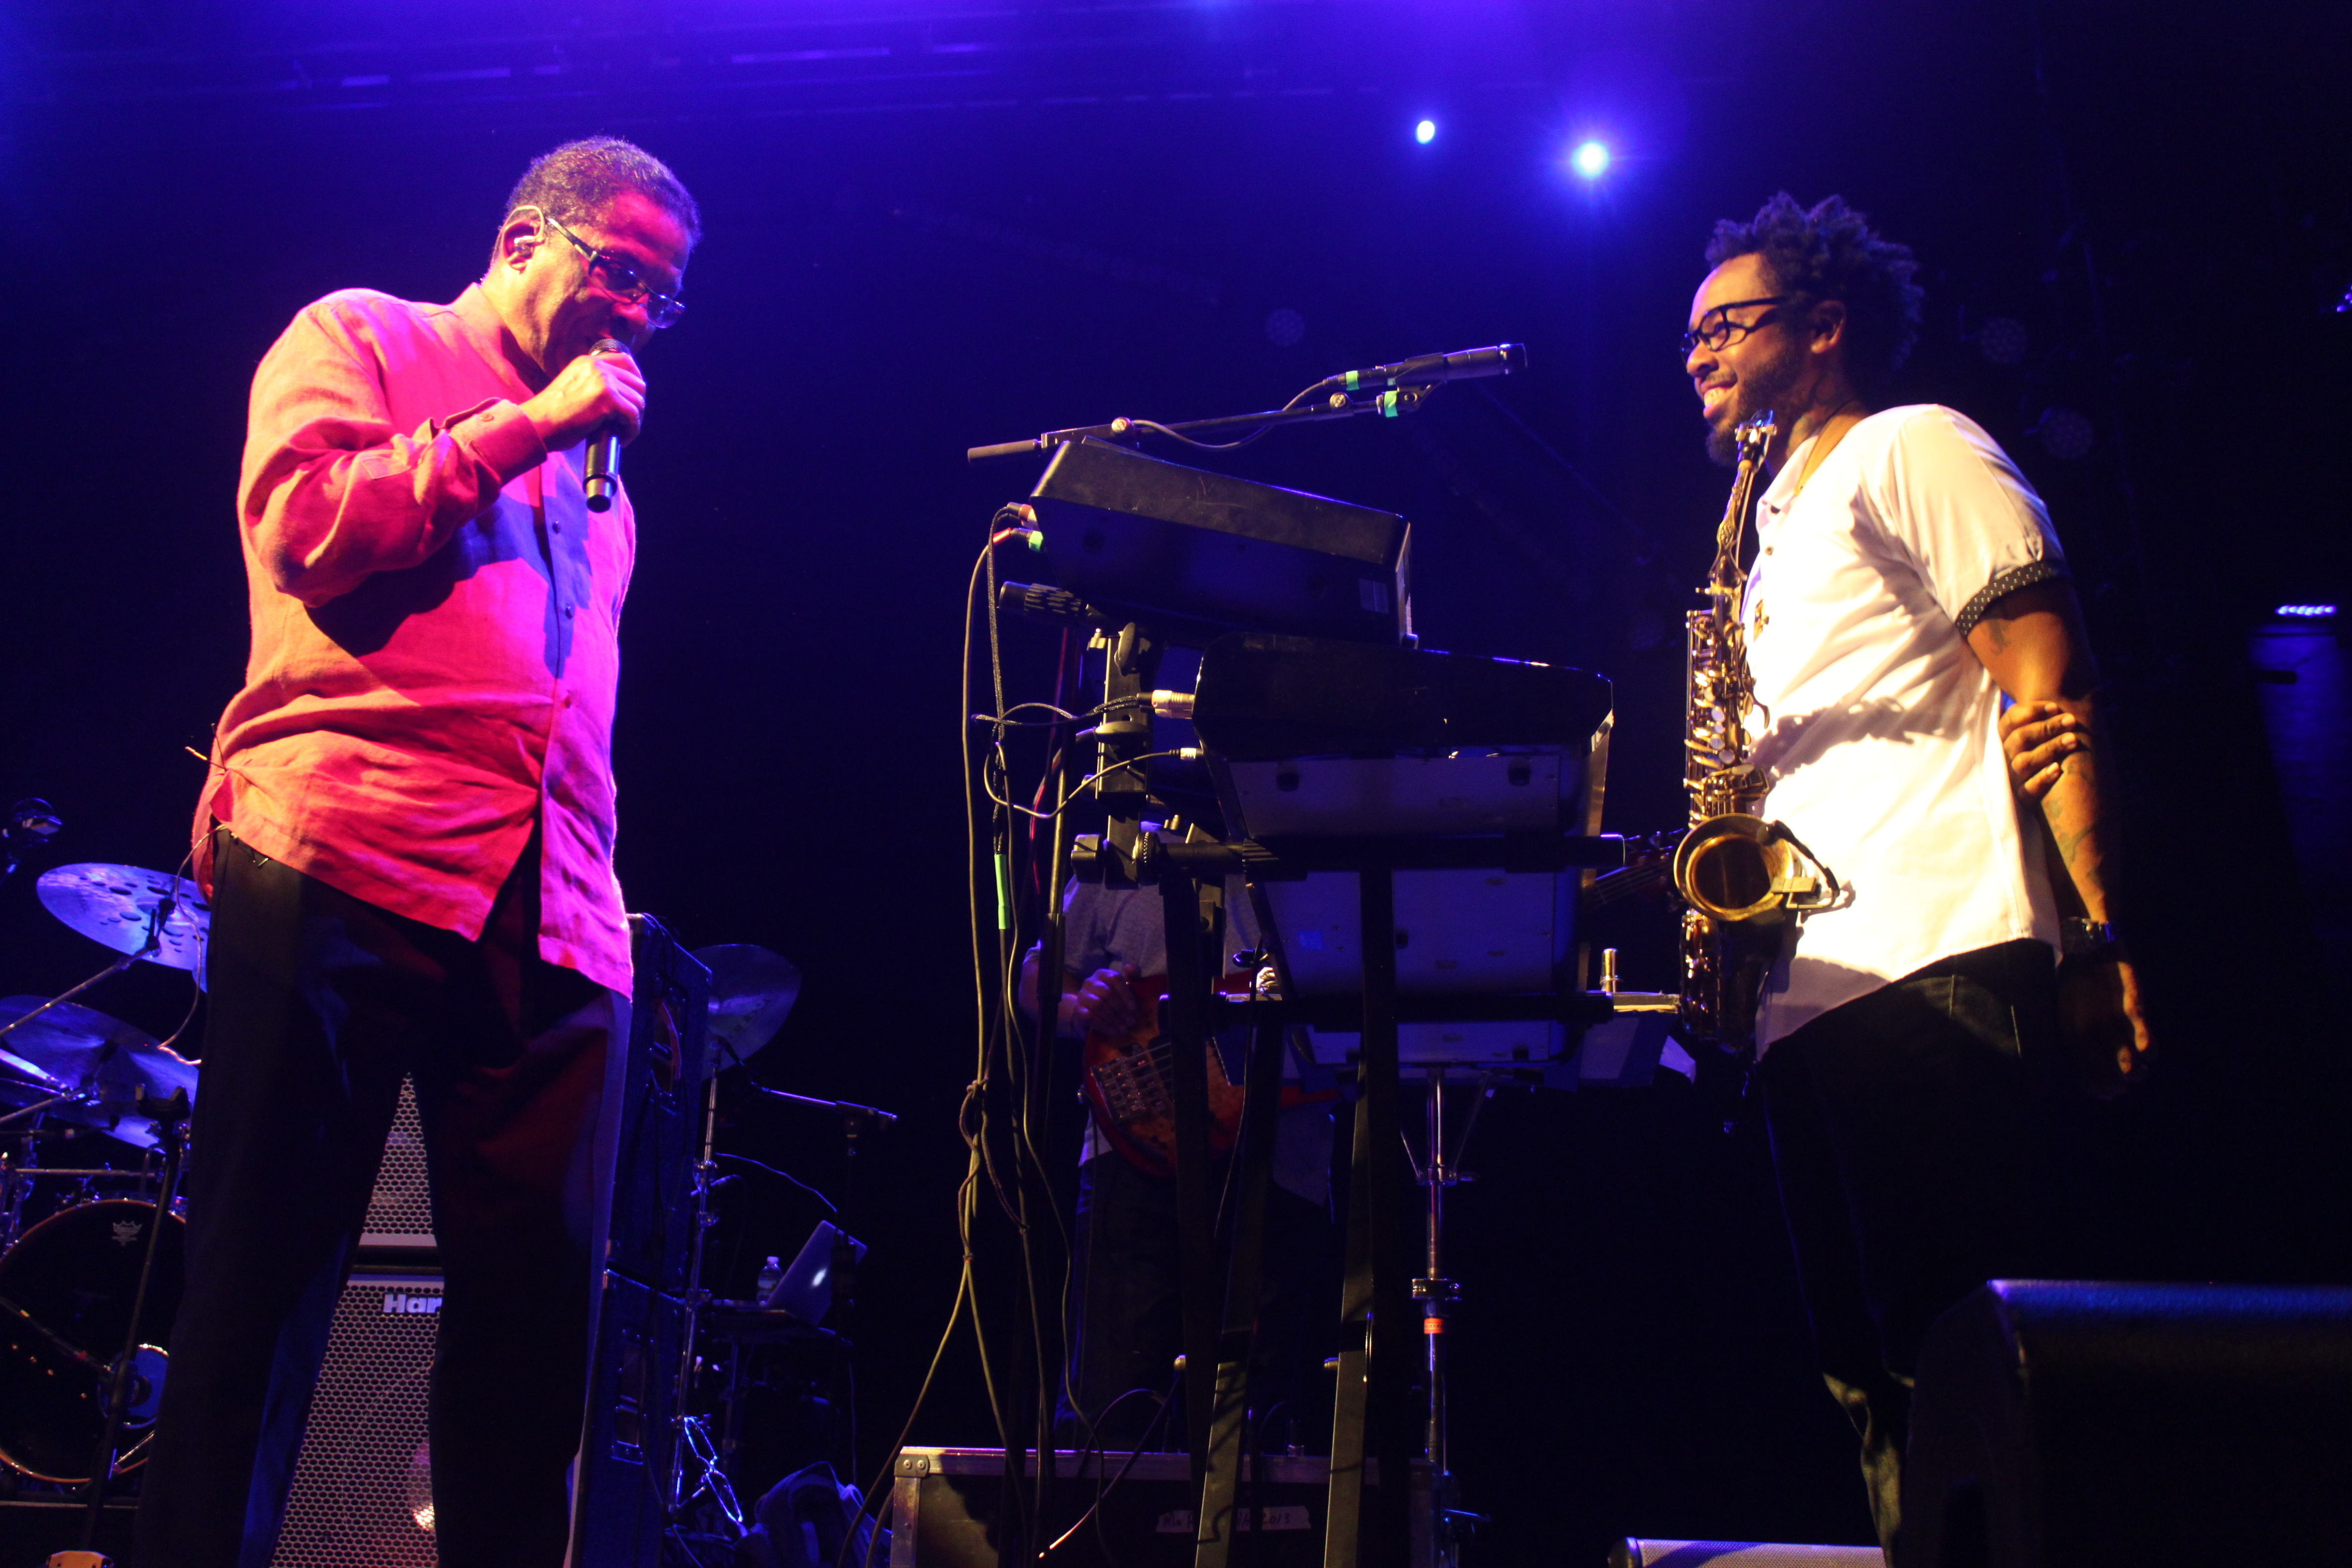 Herbie Hancock and Terrace Martin at BRIC Celebrate Brooklyn! Festival on Aug 11, 2016